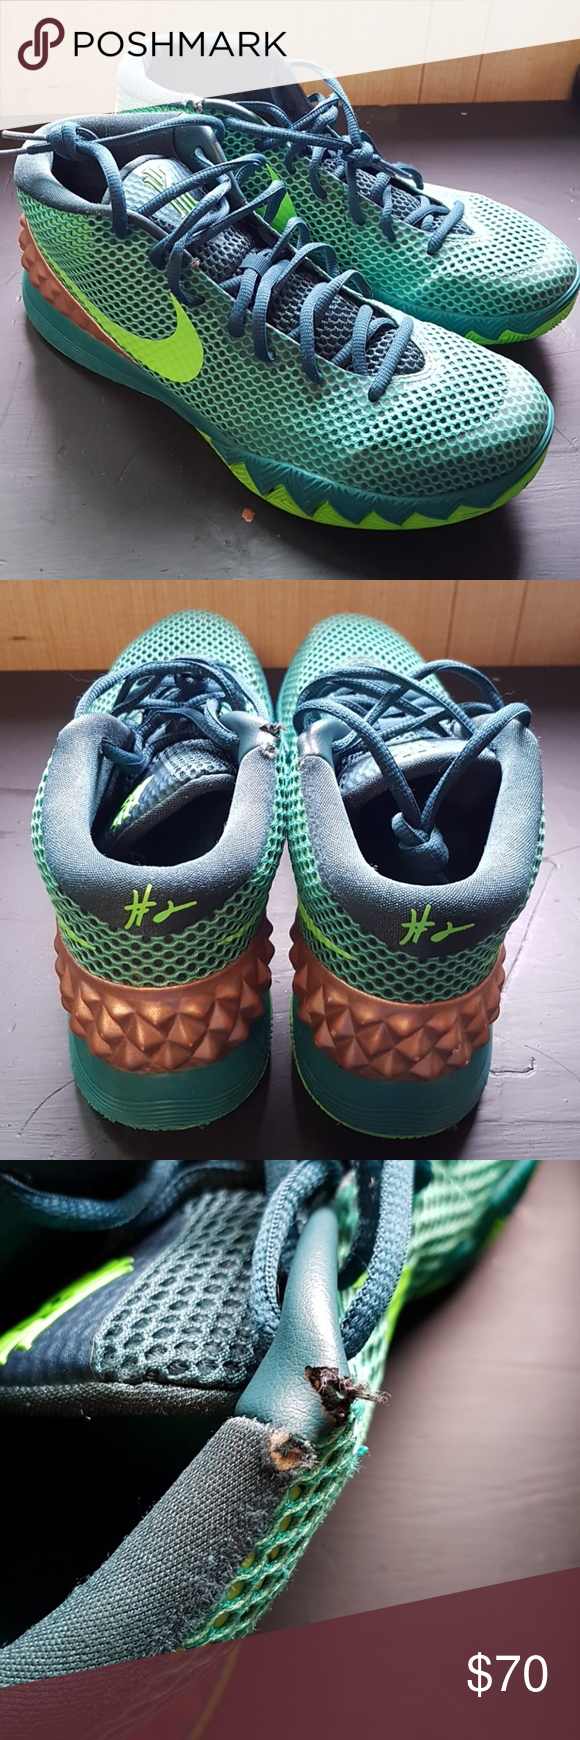 size 40 0d3e7 1ec91 Nike kyrie 1 Australia They like new it have a little rip bit still fire  Nike